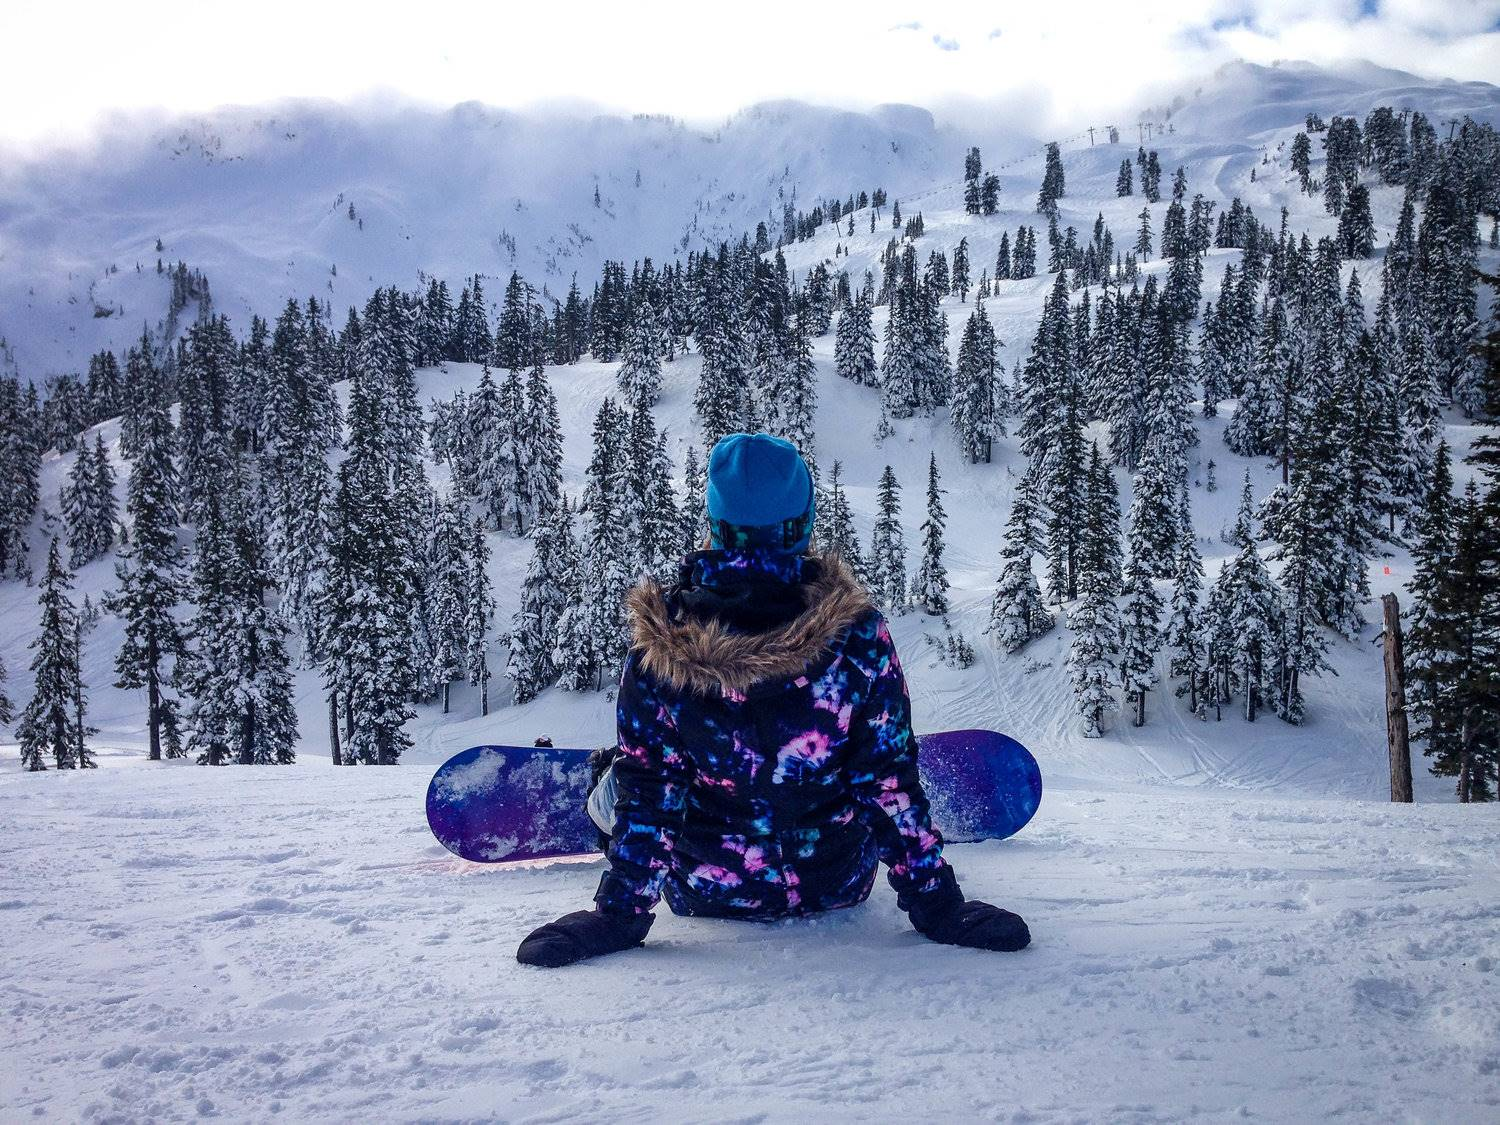 Best Things to Do in Washington State Mount Baker Snowboarding